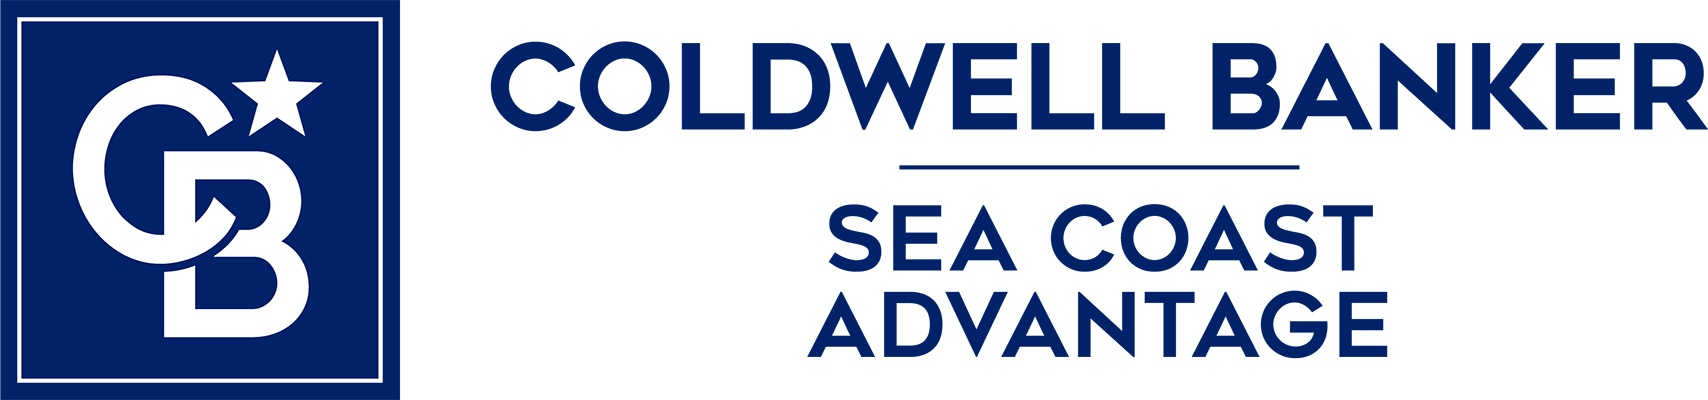 Teresa Krebs - Coldwell Banker Sea Coast Advantage Realty Logo